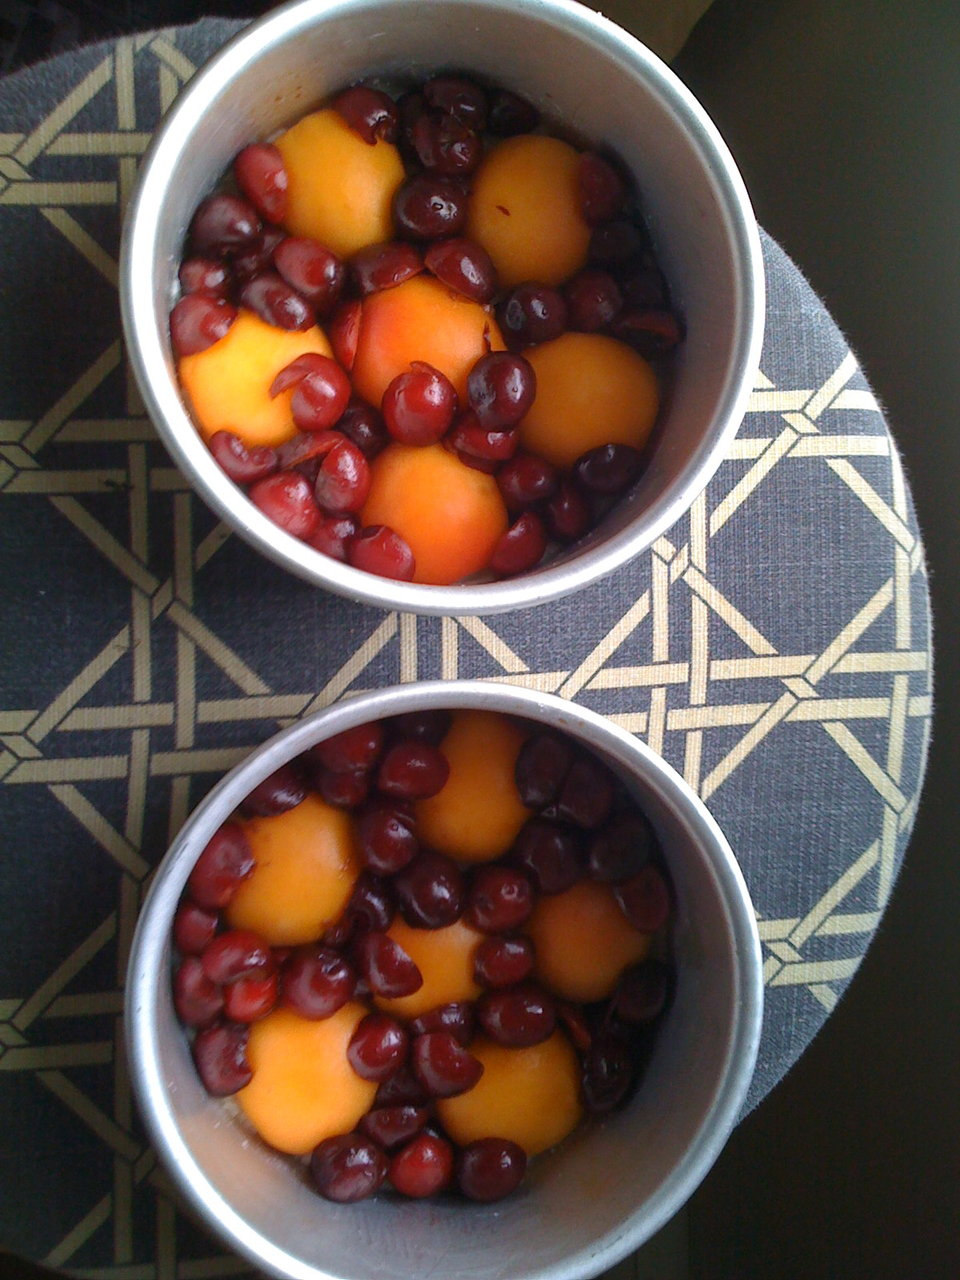 Apricot/Cherry Upside-down cake